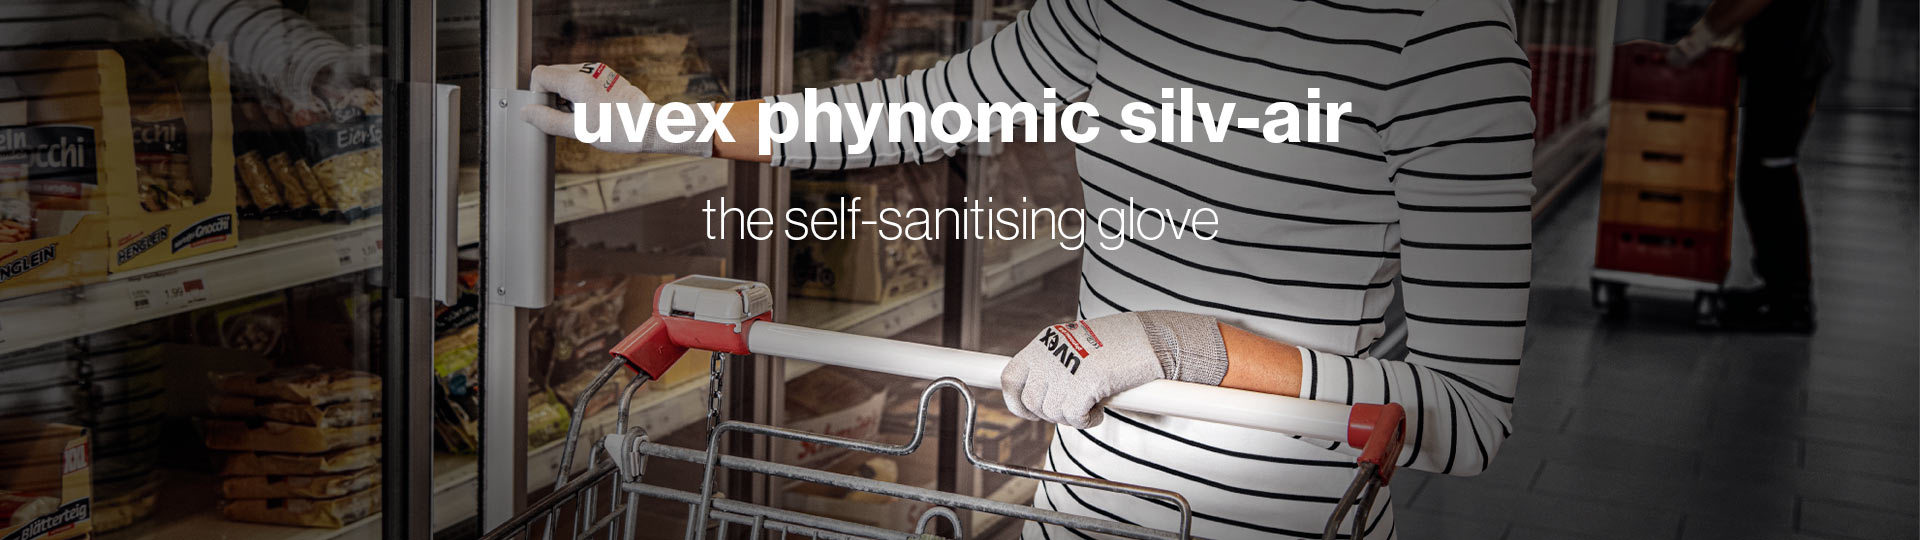 uvex phynomic silv-air - The self-sanitising safety glove